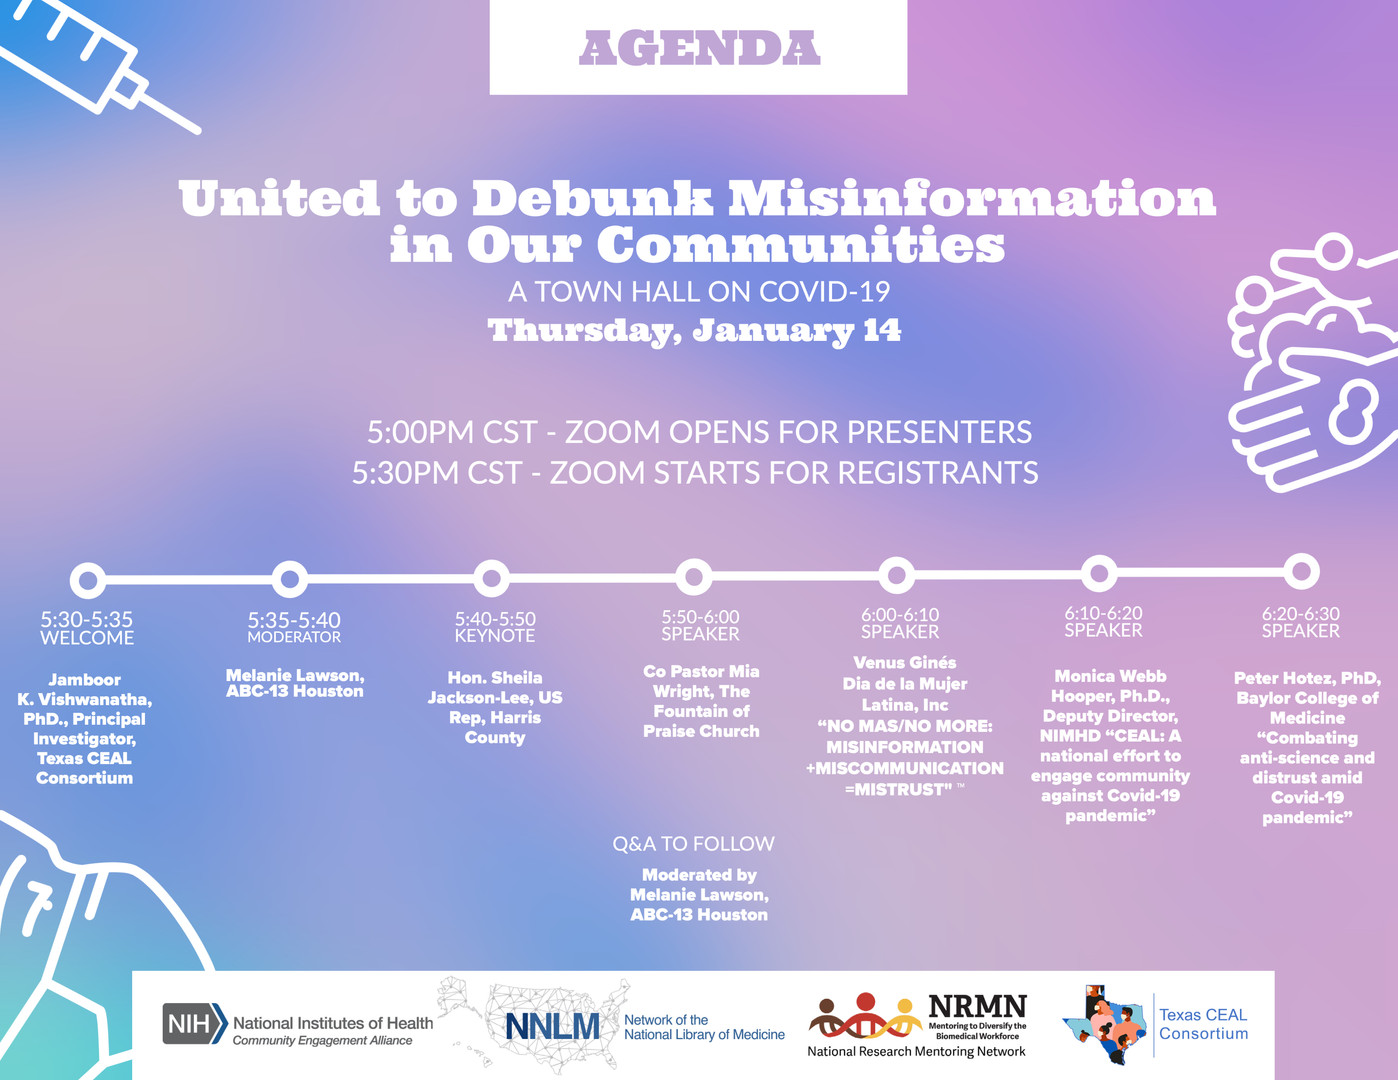 United to Debunk Misinformation - January 14th, 2021